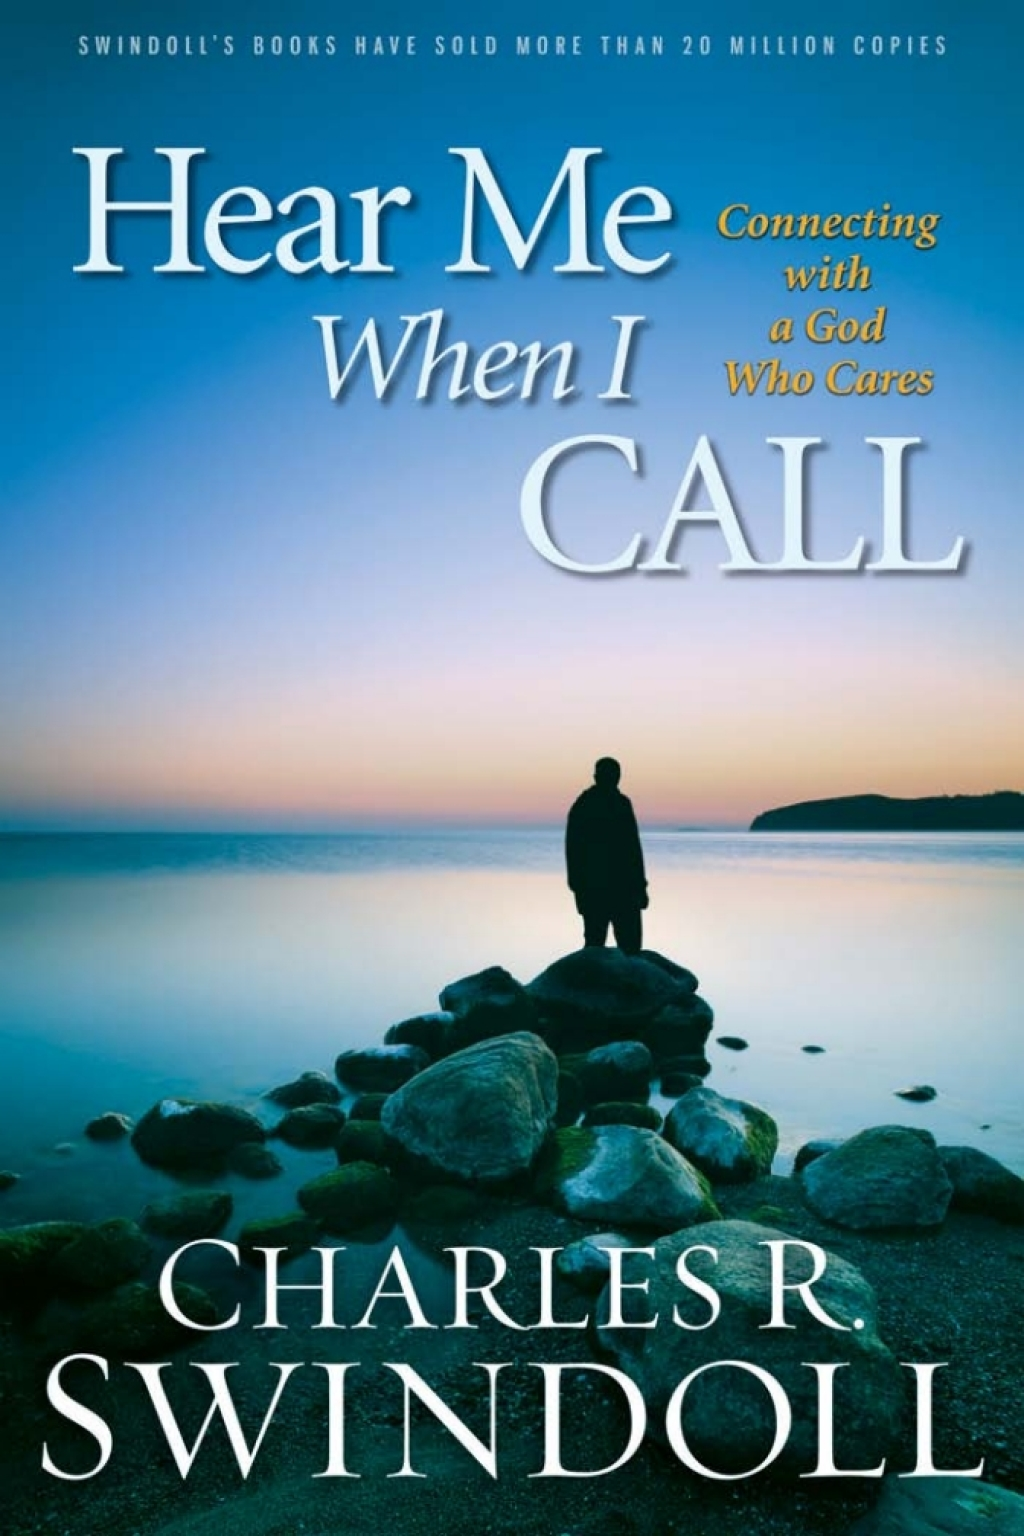 Hear Me When I Call: Learning to Connect with a God Who Cares (ebook) eBooks